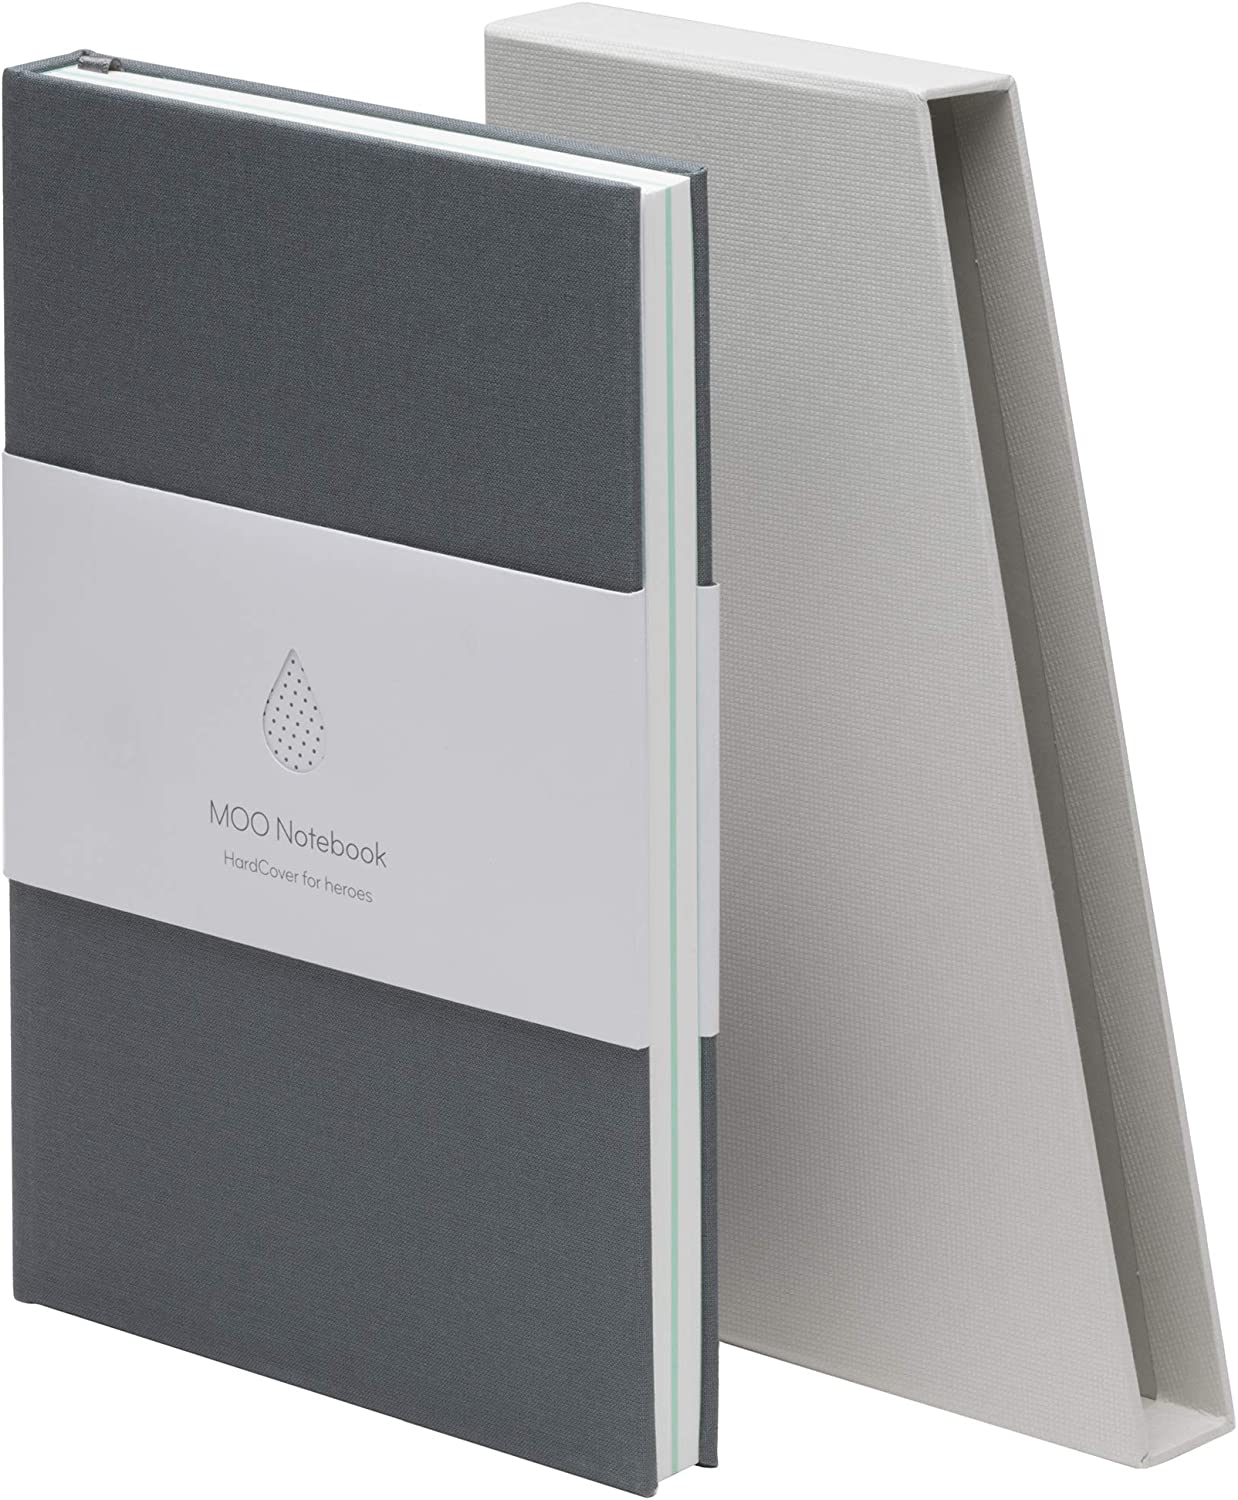 MOO Lined Hardcover Notebook - Premium Grey Lay Flat Journal - Medium-size, Thick 5x8 Paper for Writing and Work, Field Notes and Meetings (Charcoal Grey)